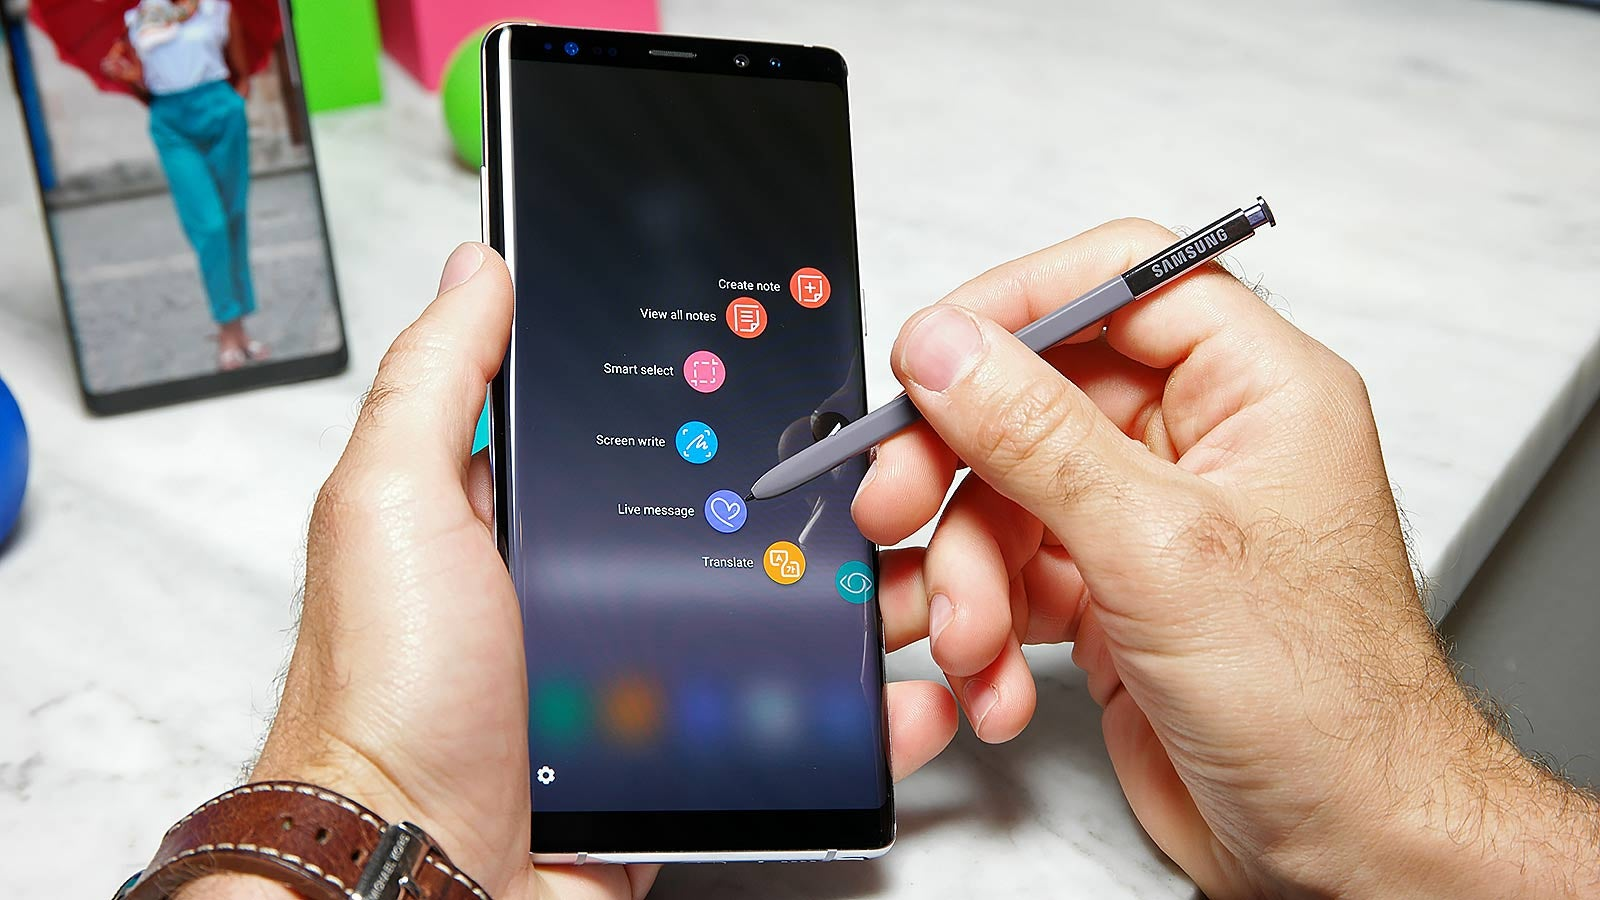 Samsung Galaxy Note 8 Review: The Best Jumbo Phone On The Market